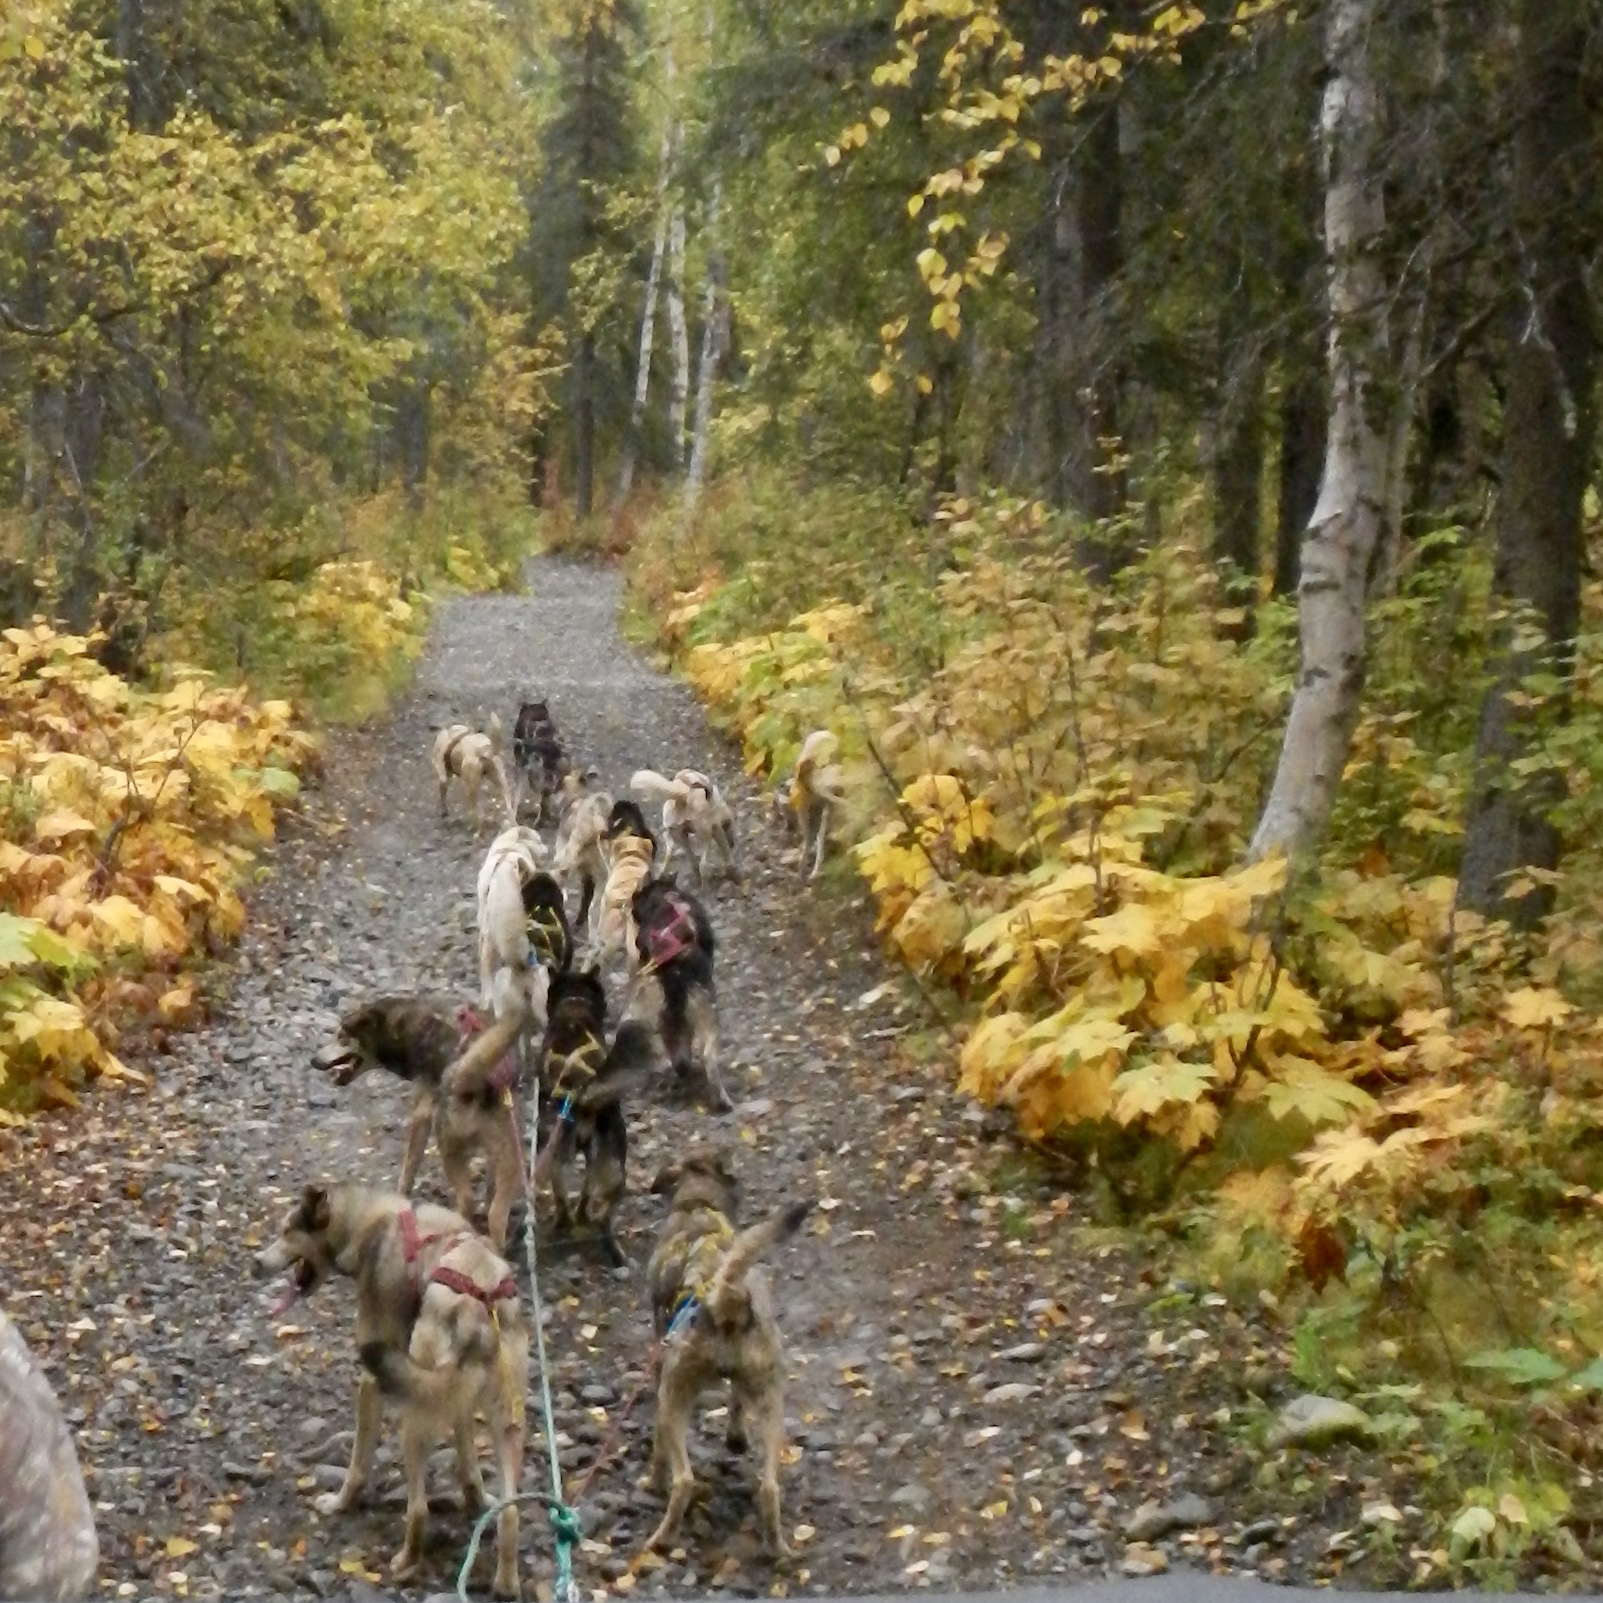 In Sled Dog Racing, the dog out front is called the leader for a reason.